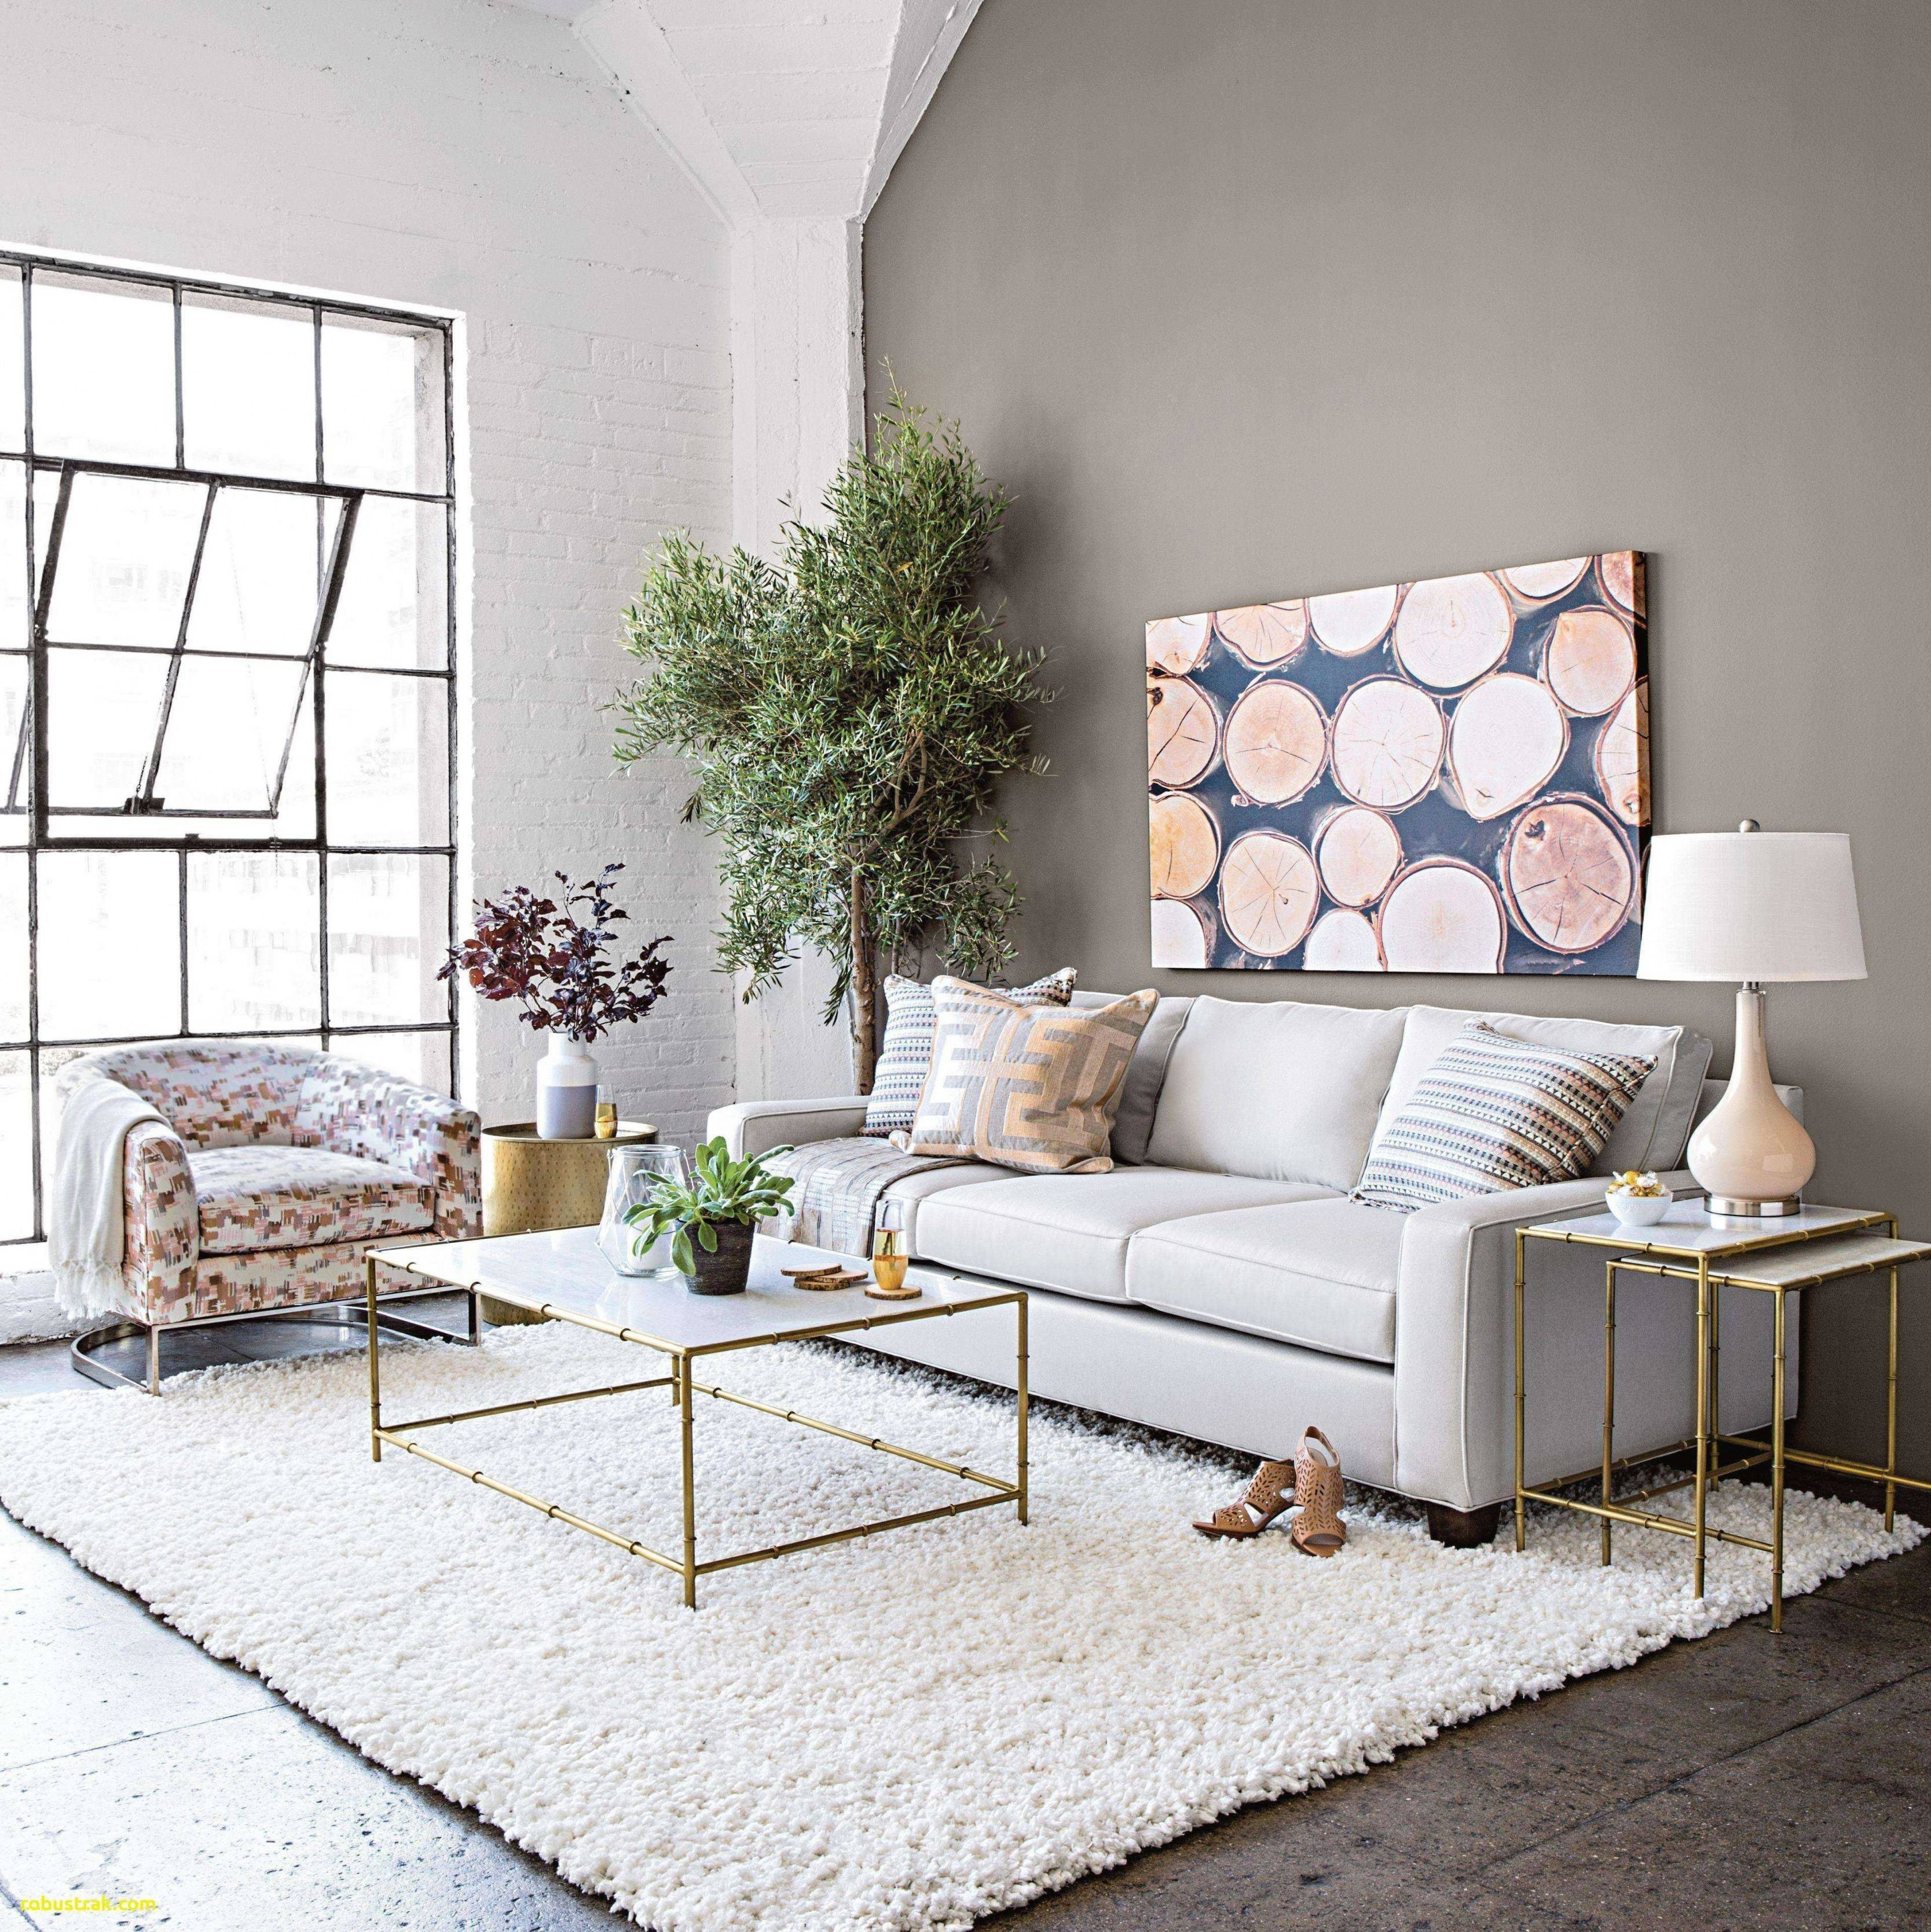 blue living room color schemes 48 inspirational blue and black living room decorating ideas of blue living room color schemes 1